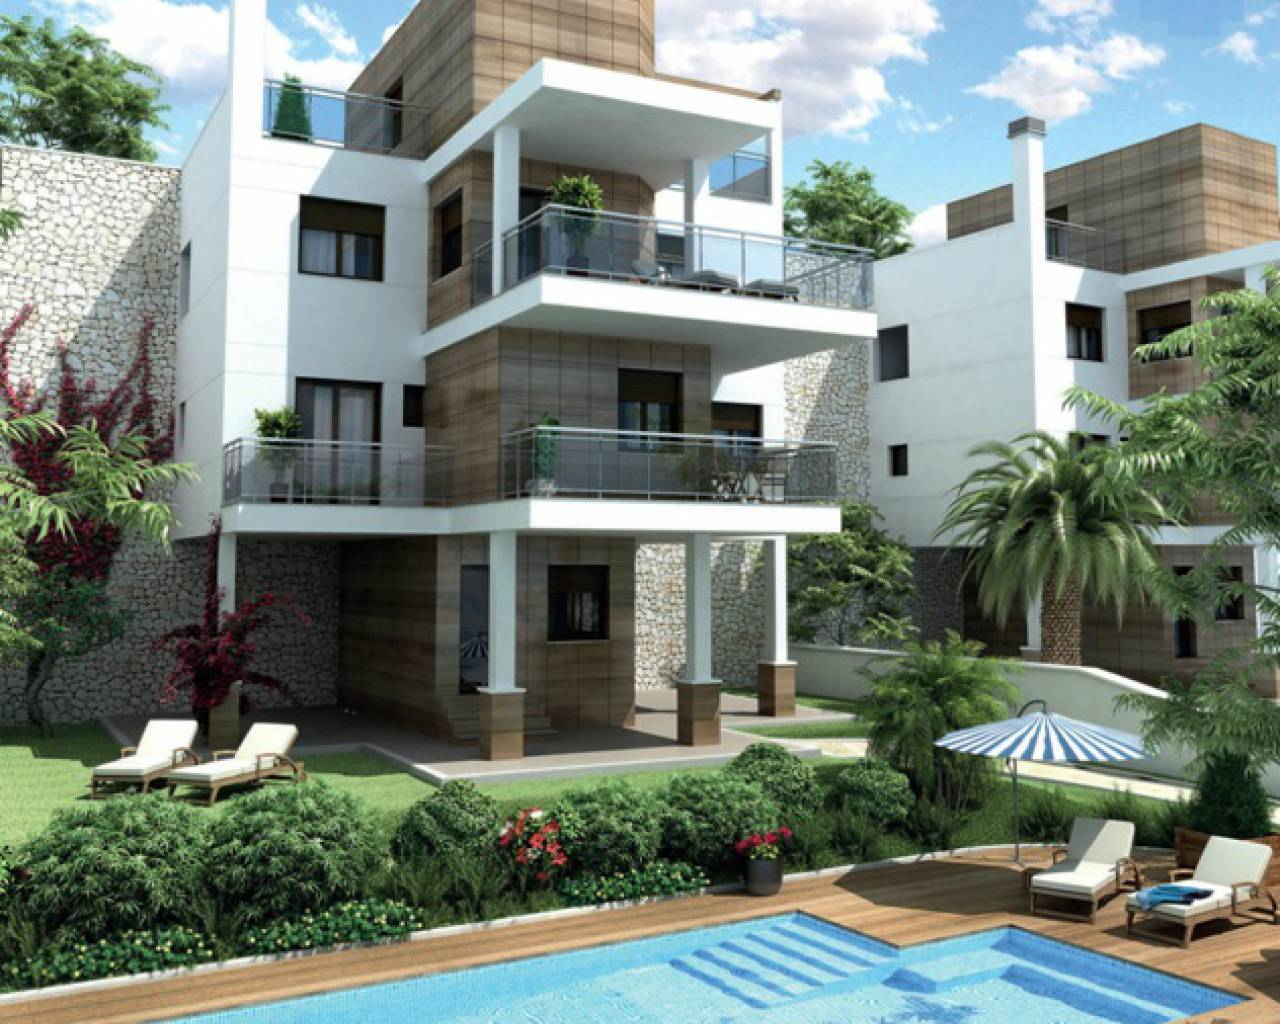 Detached Villa - New Build - Ciudad Quesada - La Marquesa